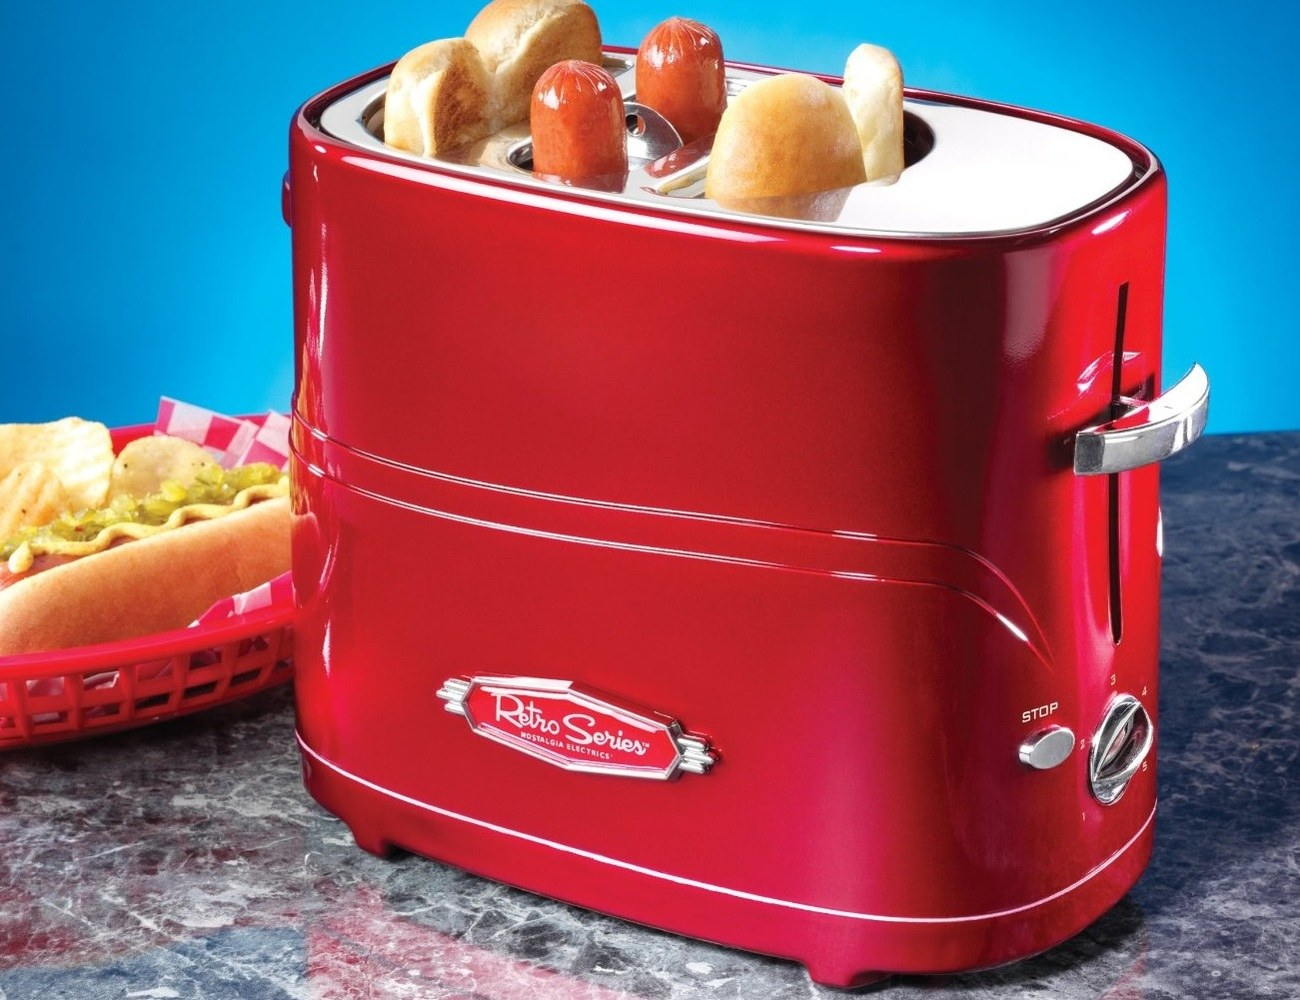 Retro Series Pop Up Hot Dog Toaster